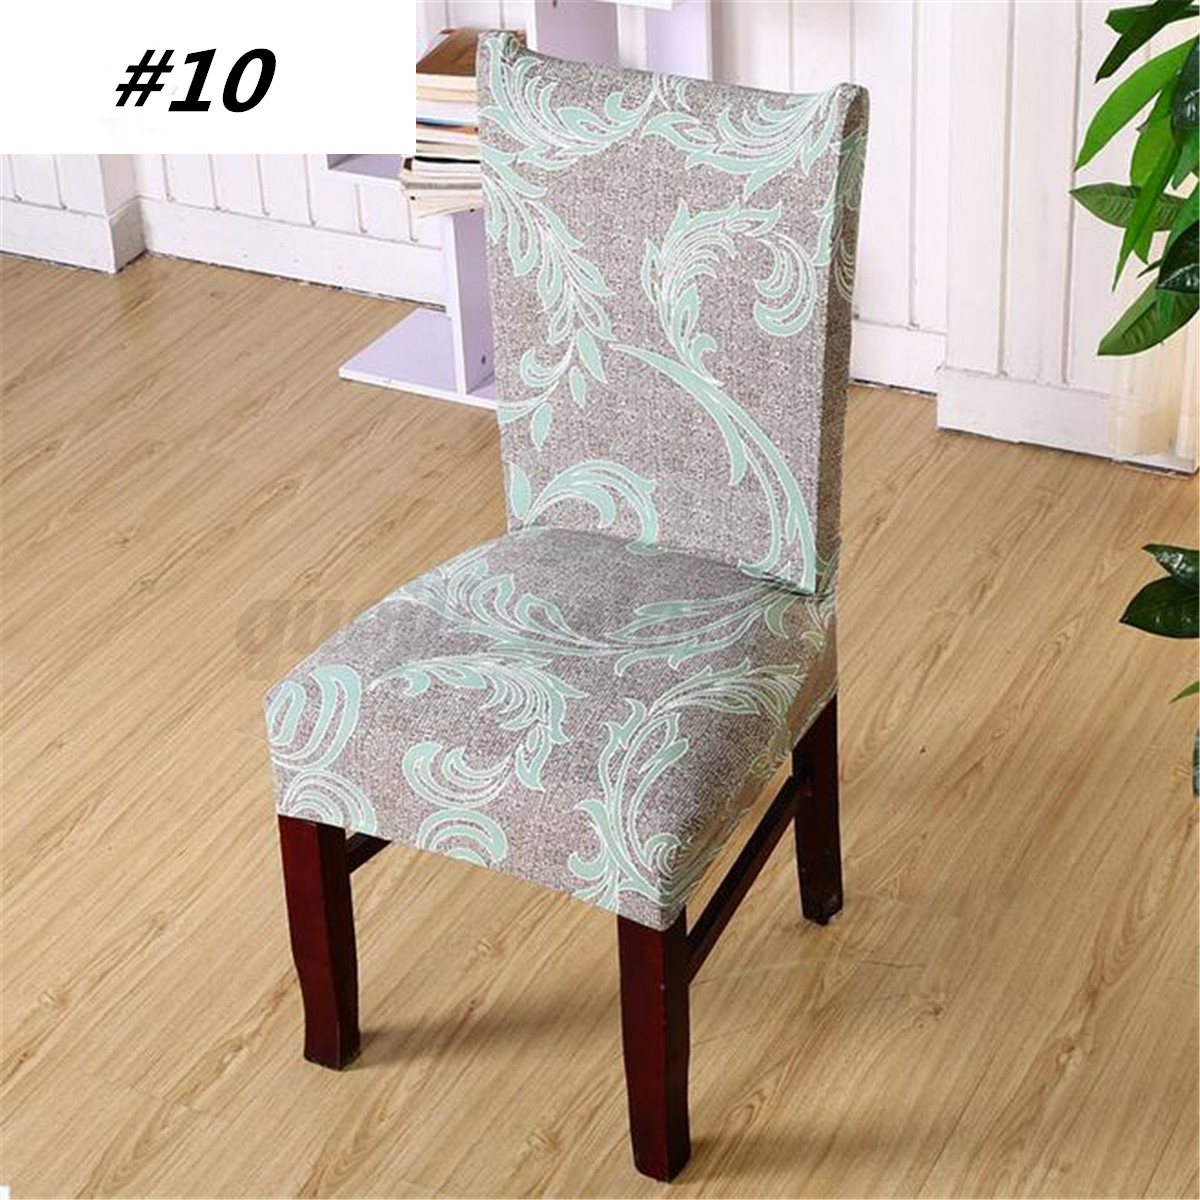 wedding chair covers chelmsford cheap foldable chairs spandex stretch cover seat polyester washable